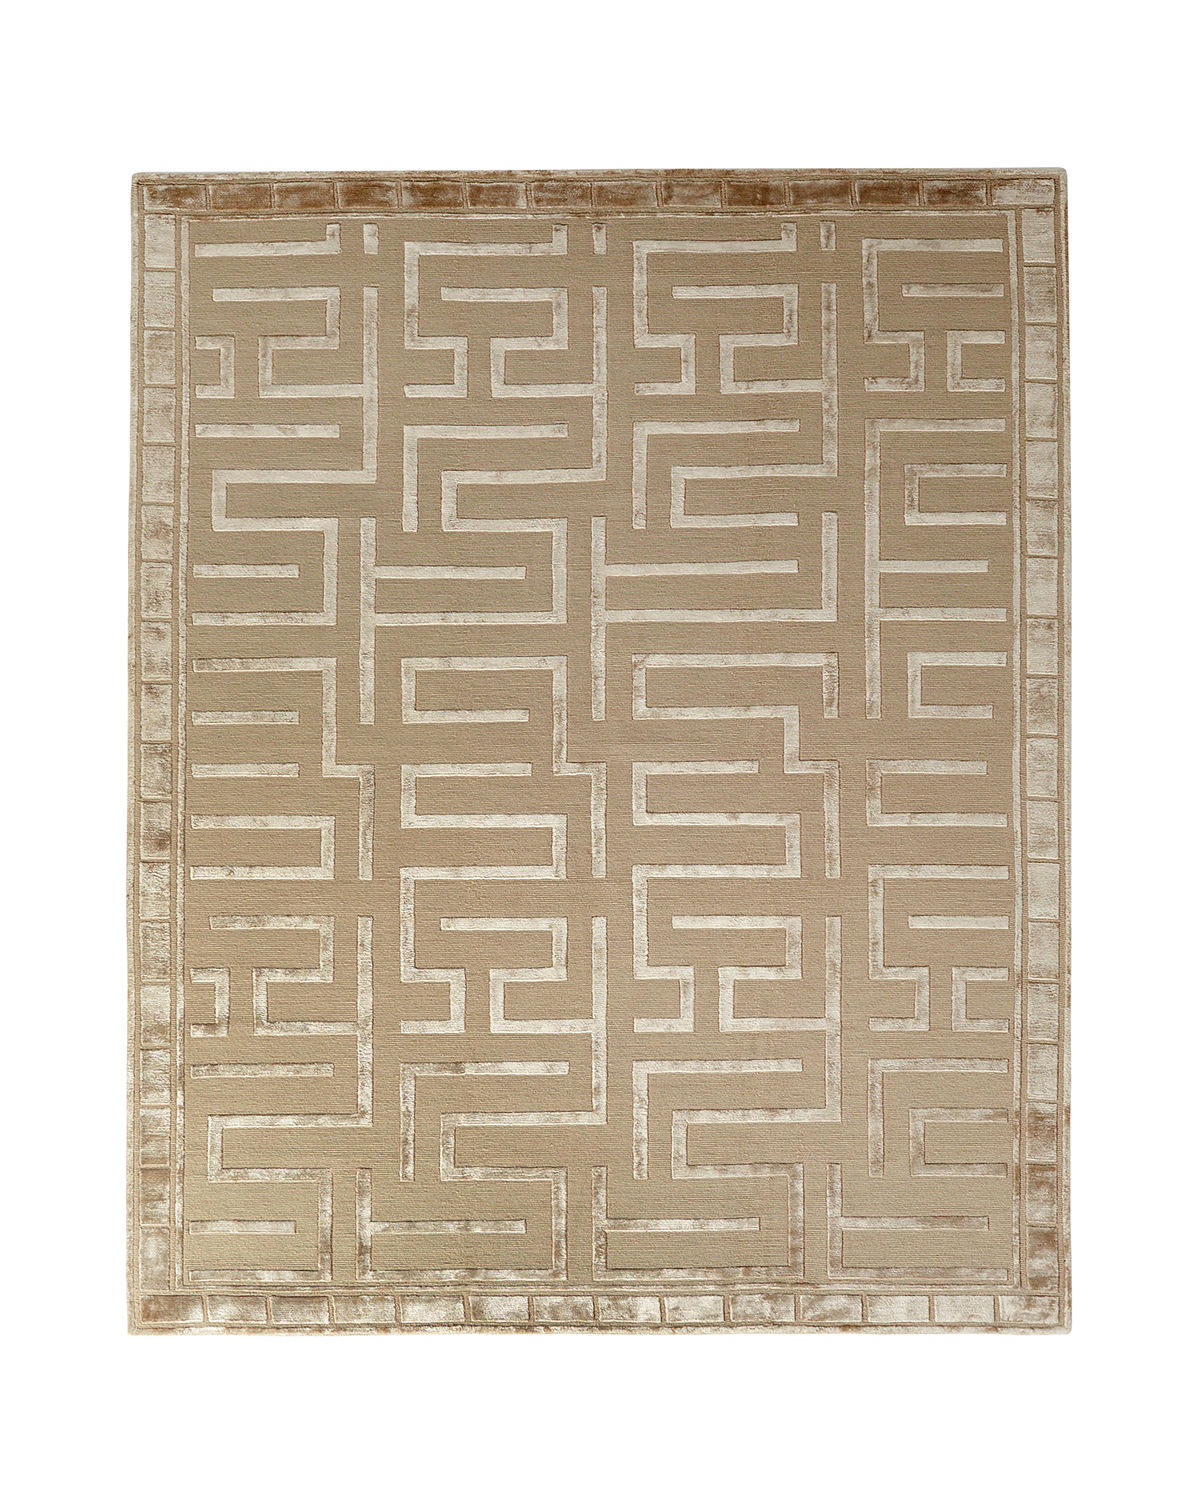 Exquisite Rugs Rowling Maze Hand-Knotted Rug, 12' x 15'